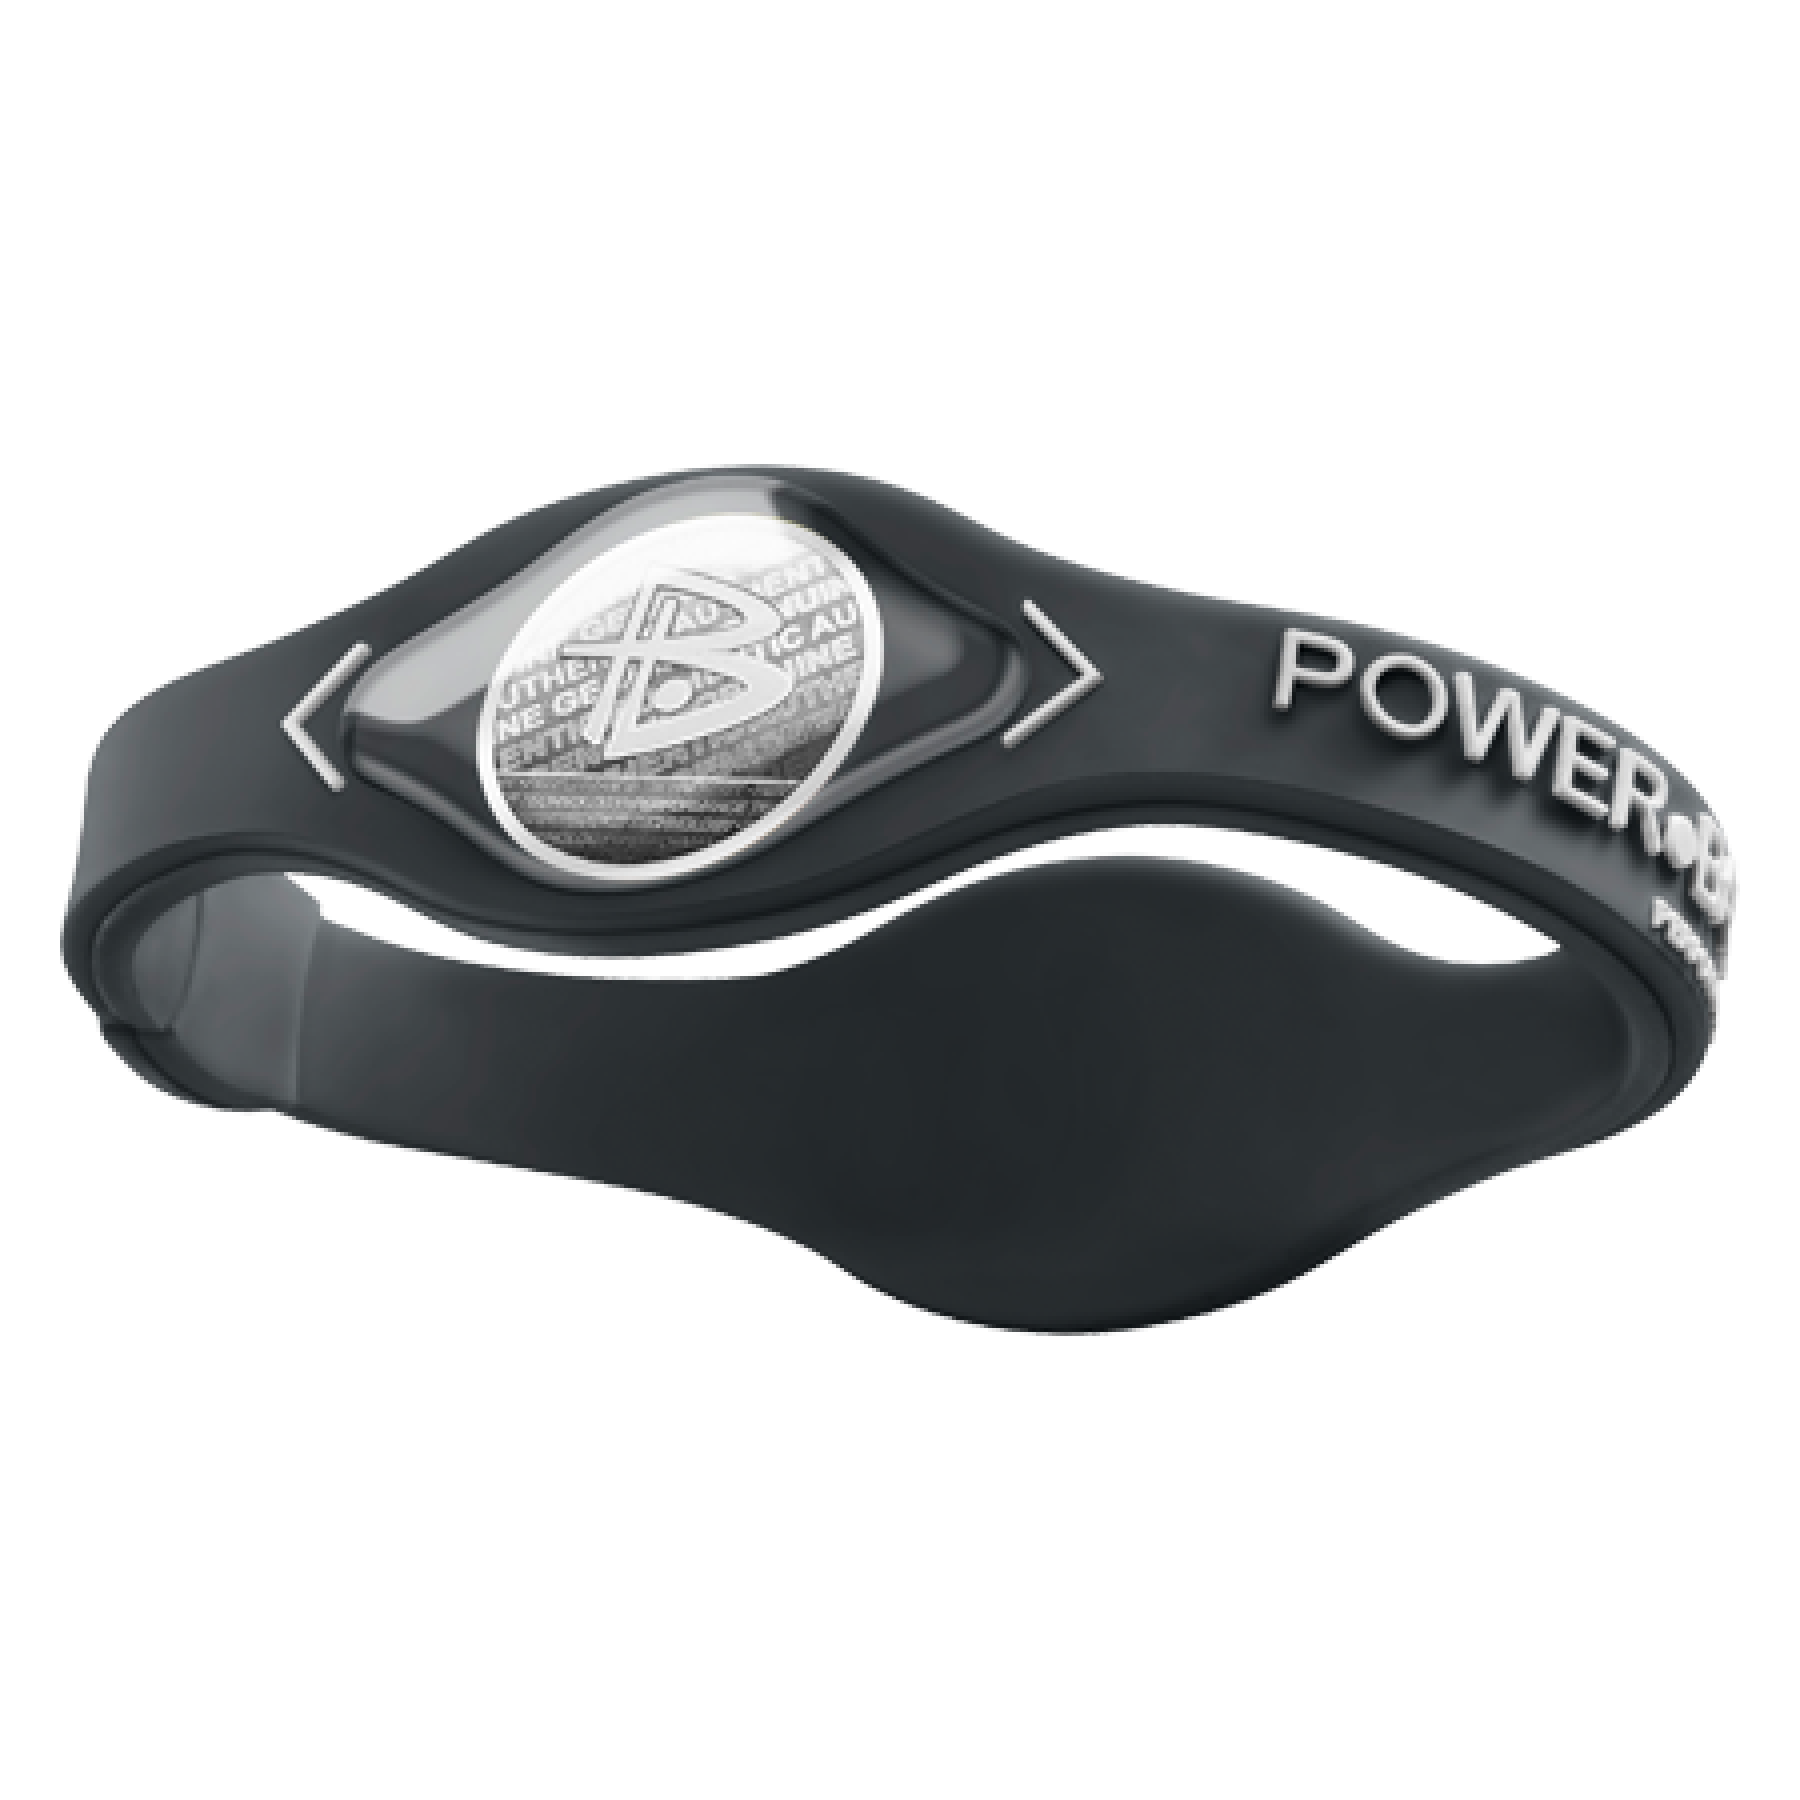 Браслет Power Balance  серия Core Black/White